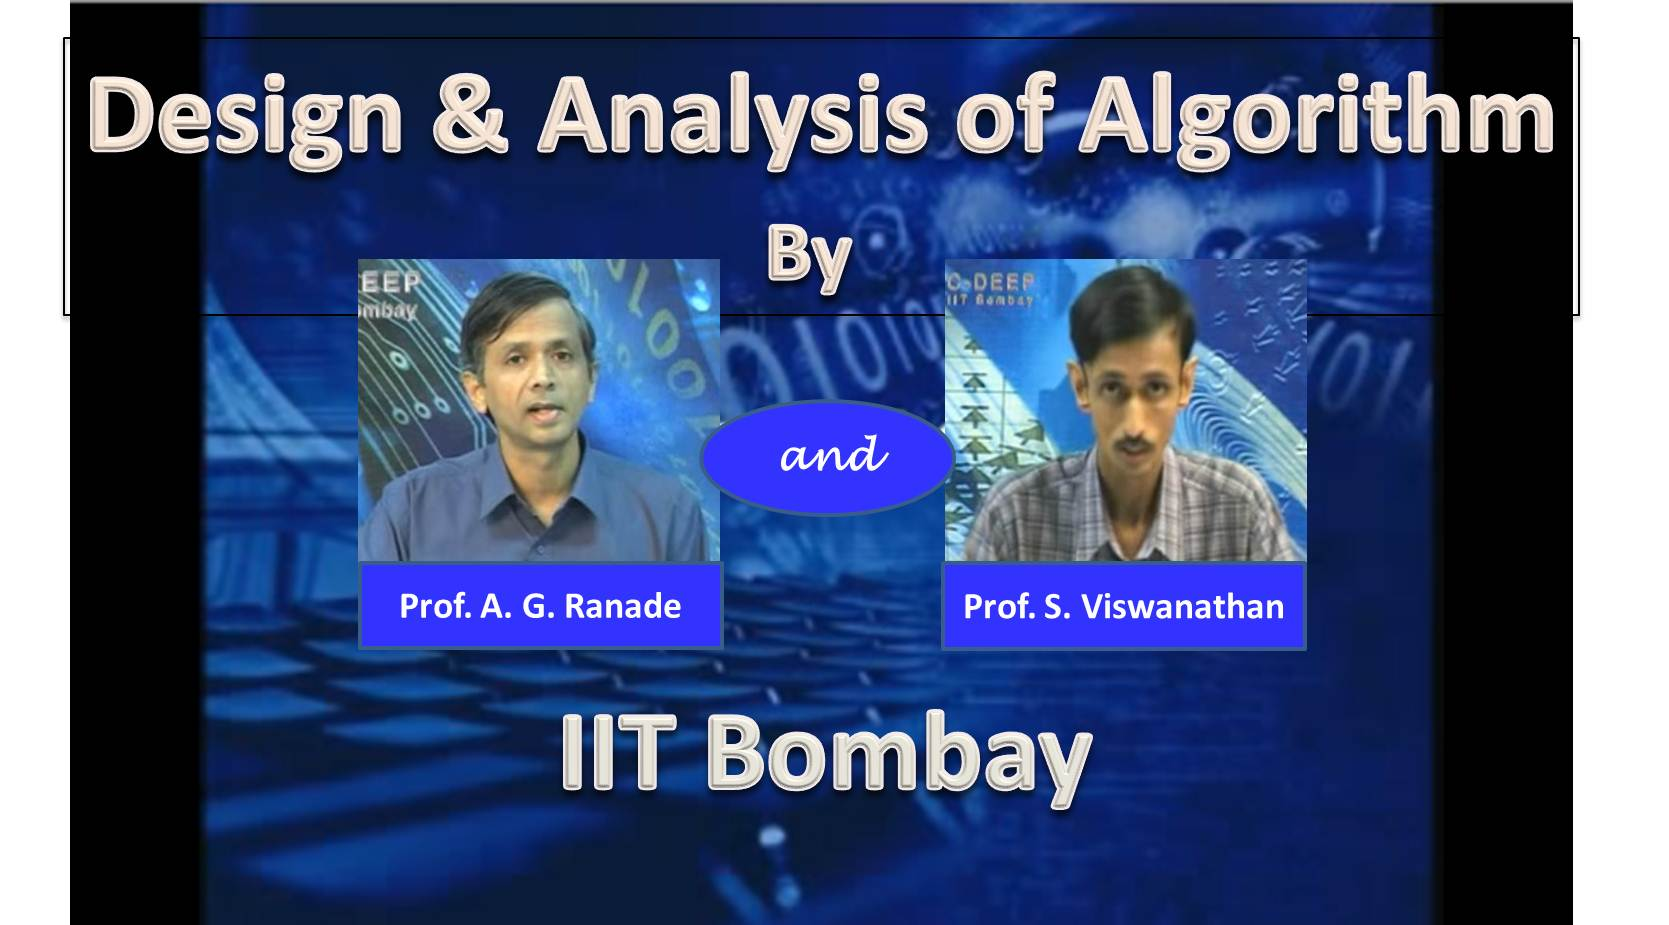 http://study.aisectonline.com/images/SubCategory/Video Lecture Series on Design & Analysis of Algorithms by Prof.Abhiram Ranade and Prof. S. Viswanathan, IIT Bombay.jpg